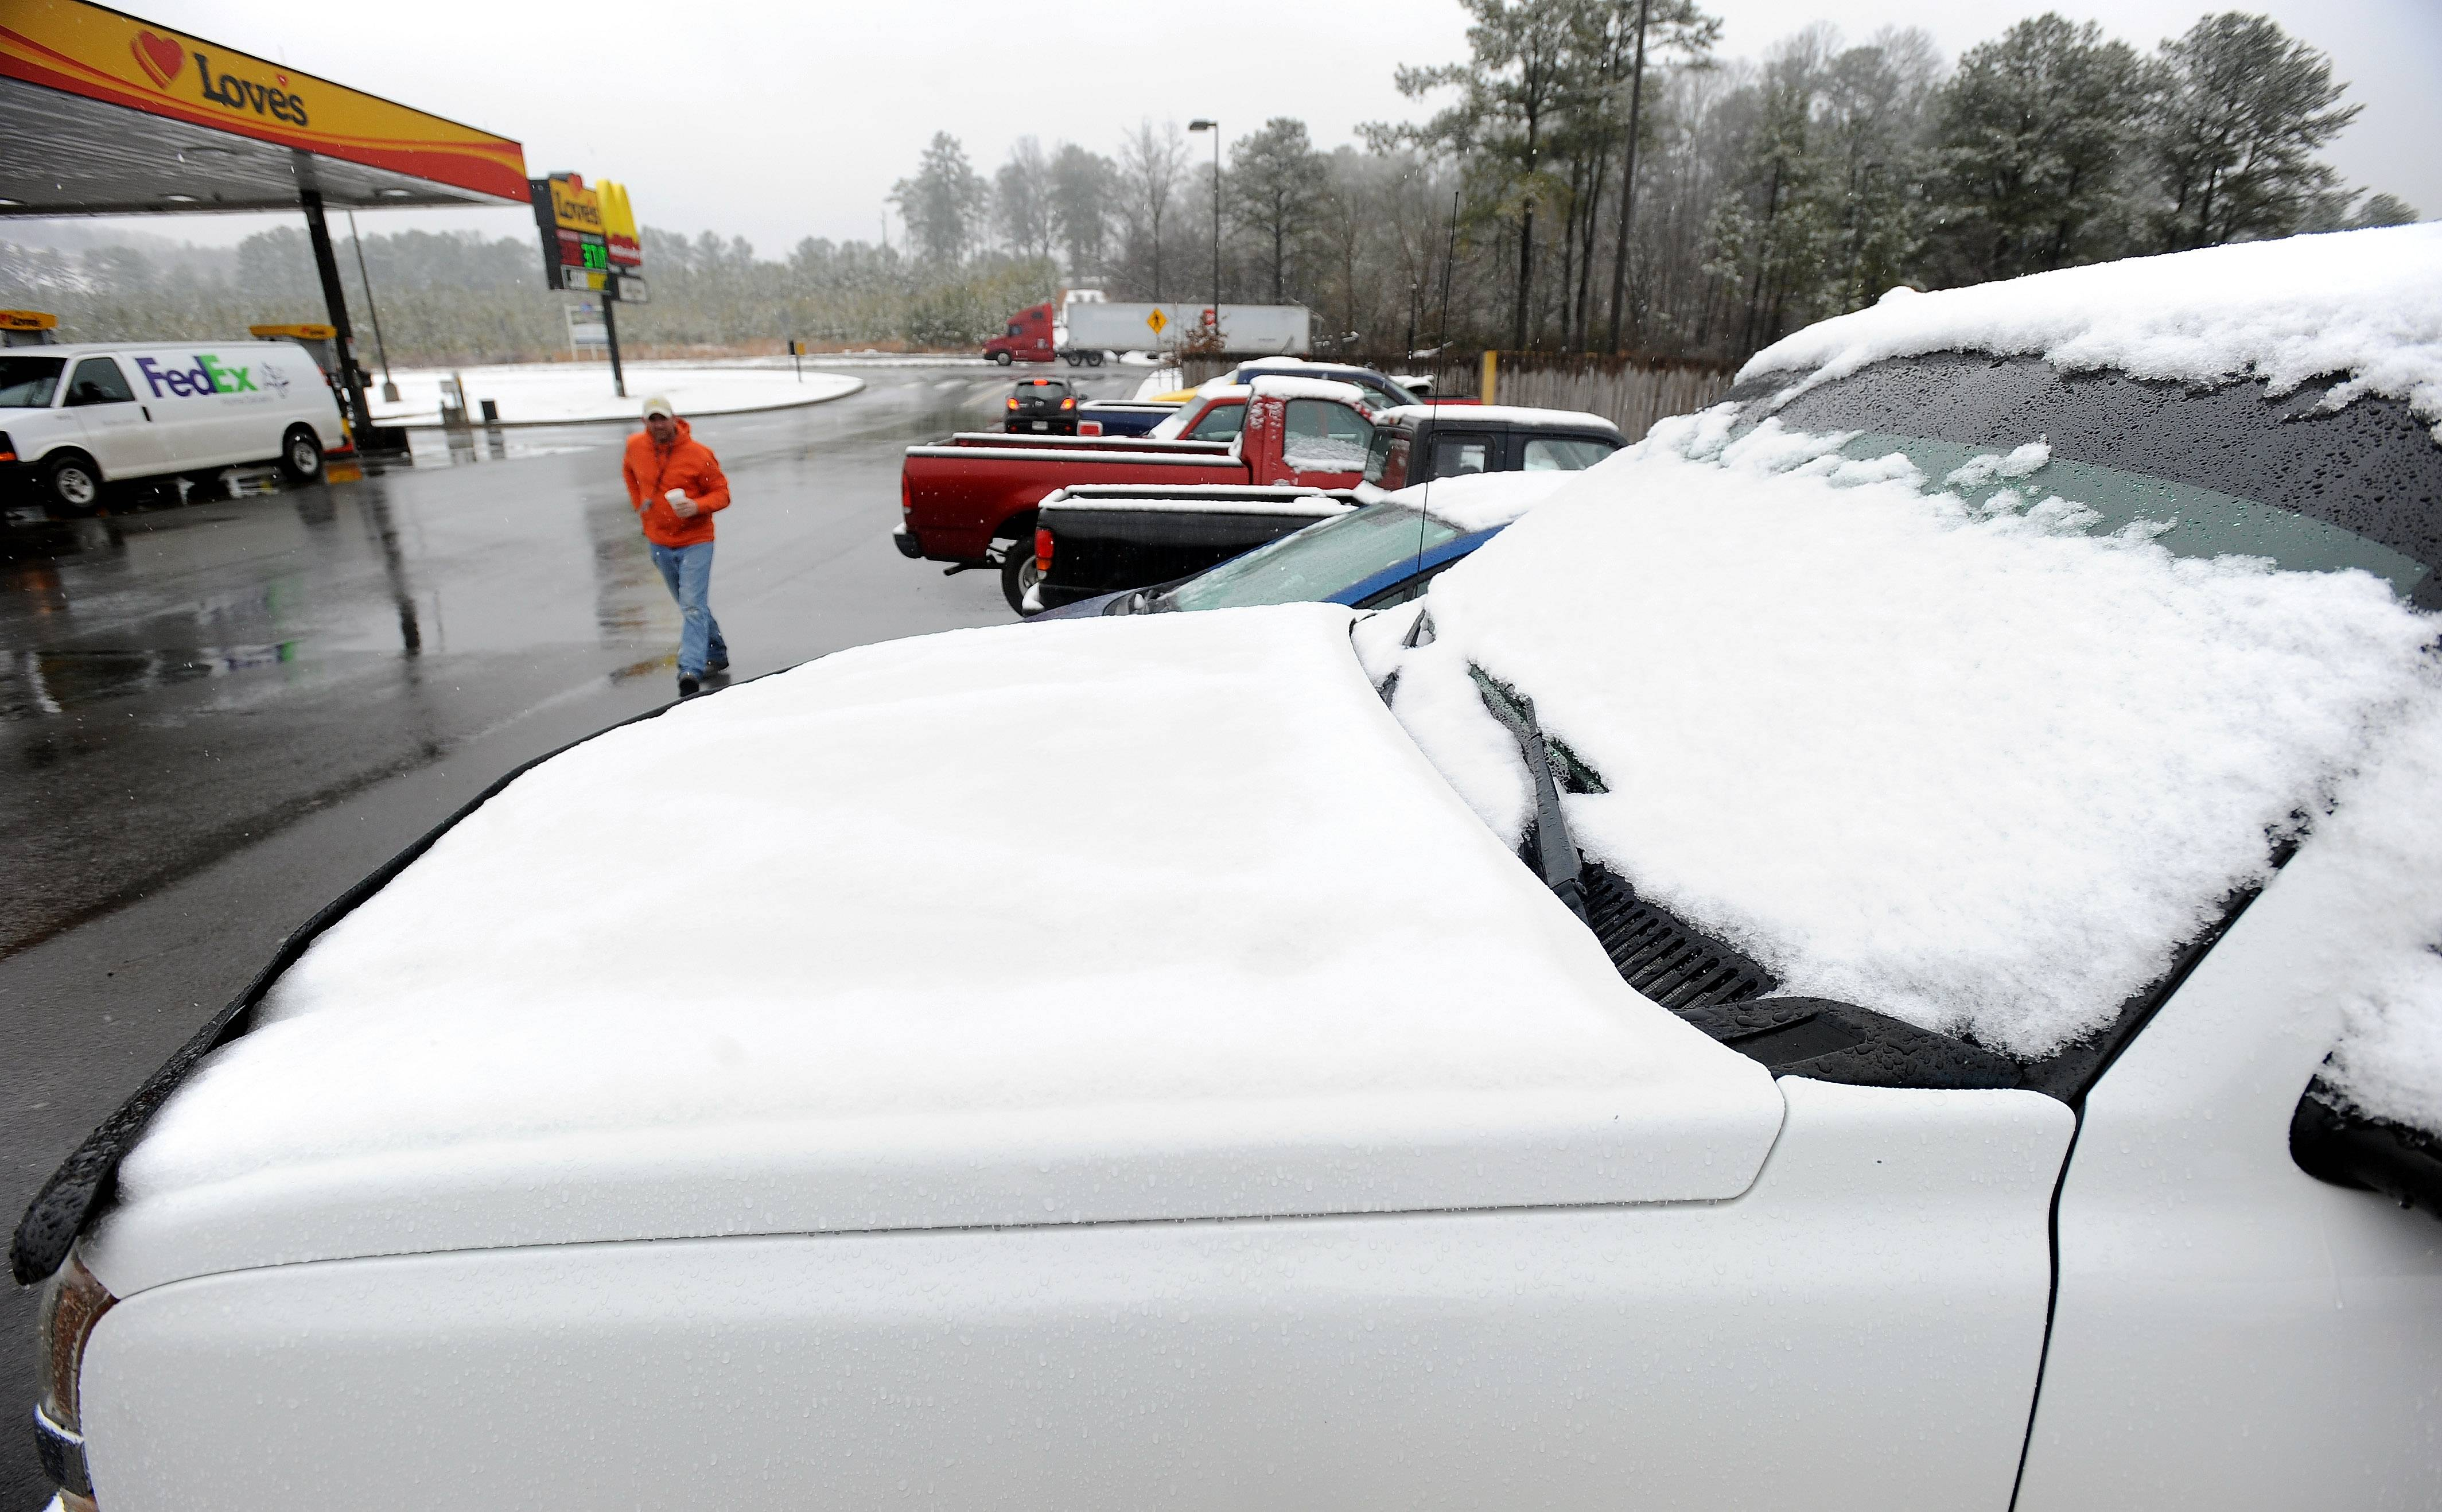 Snow accumulates on a pickup truck as Ryan Warmack, center, walks toward a truck stop trying to locate tire chains during a winter snowstorm in Emerson, Ga., about 40 miles north of metro Atlanta, on Tuesday, Feb. 11, 2014.